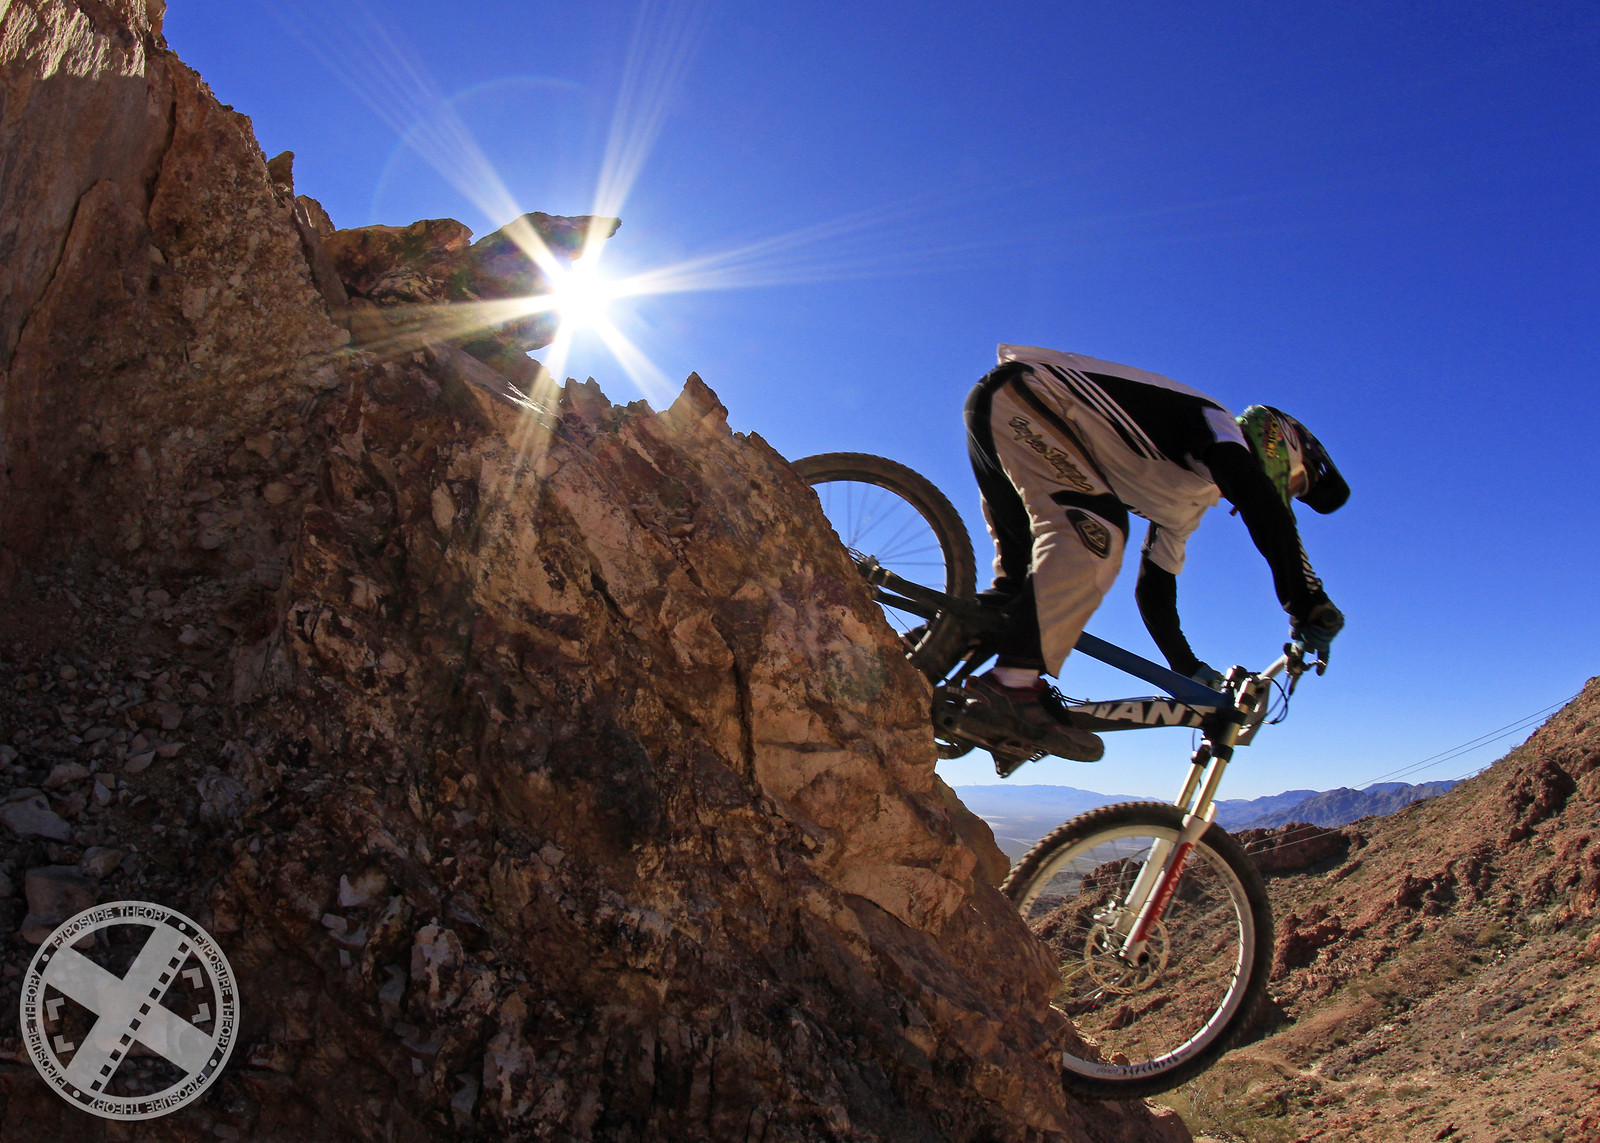 2013 Nevada State DH Race @ Bootleg Canyon. - projekt roam - Mountain Biking Pictures - Vital MTB